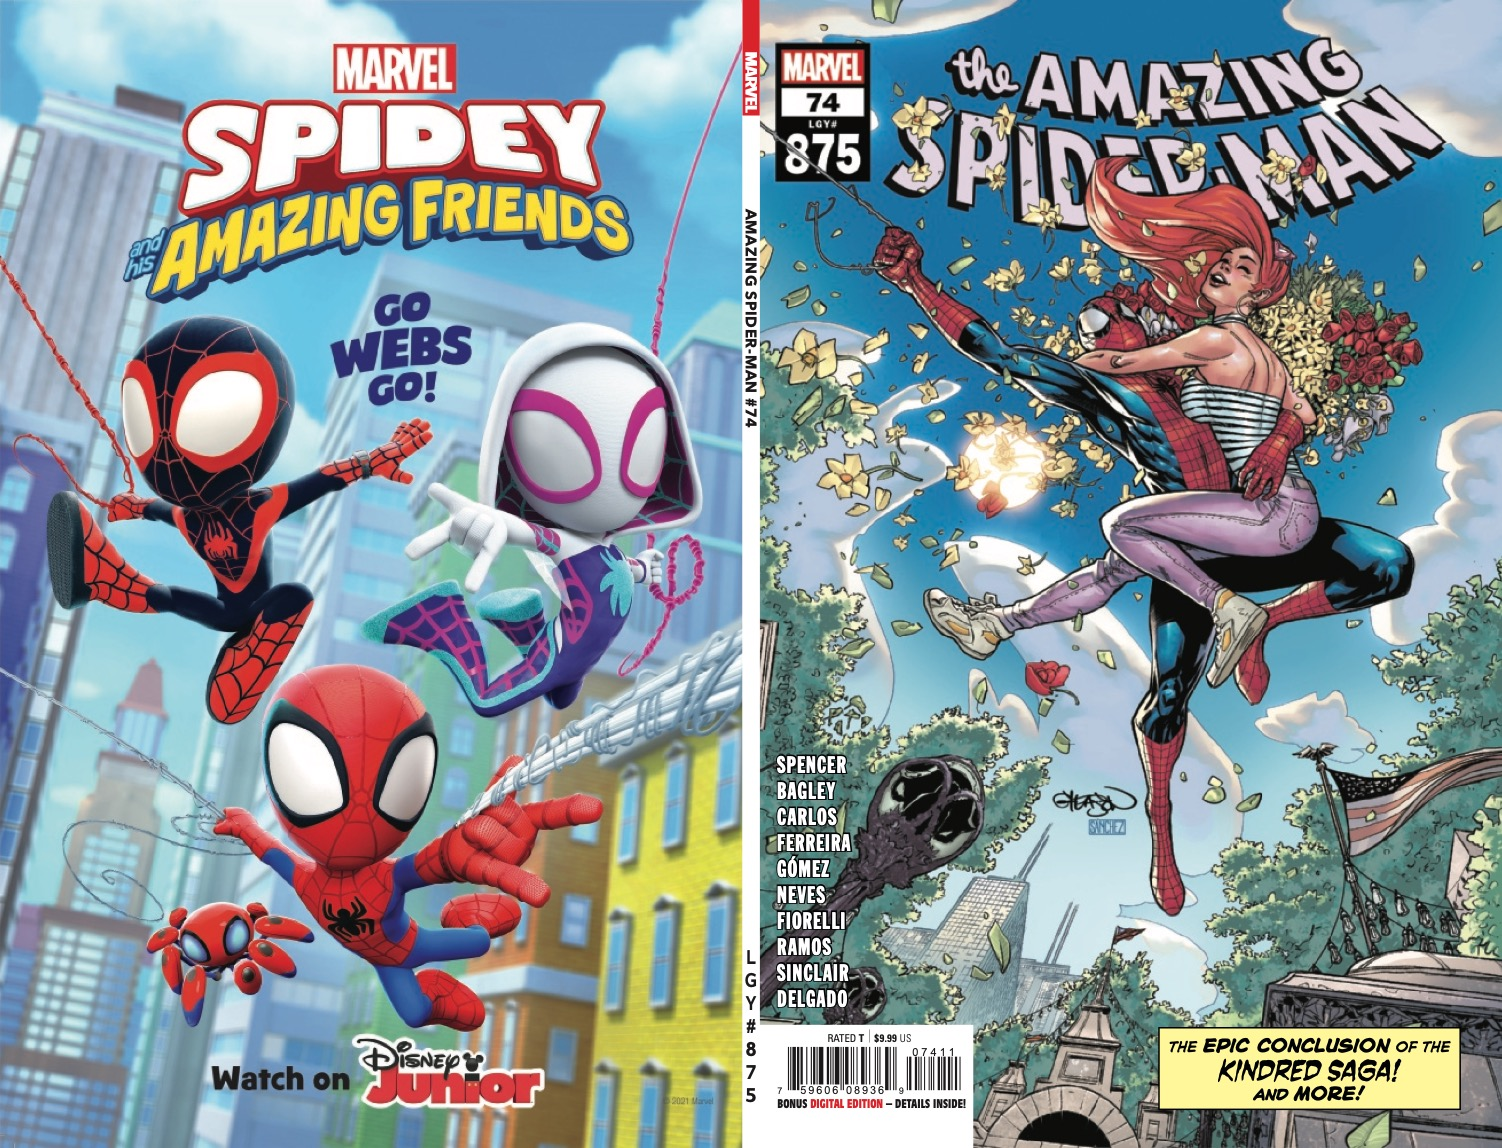 Marvel Preview: Amazing Spider-Man #74